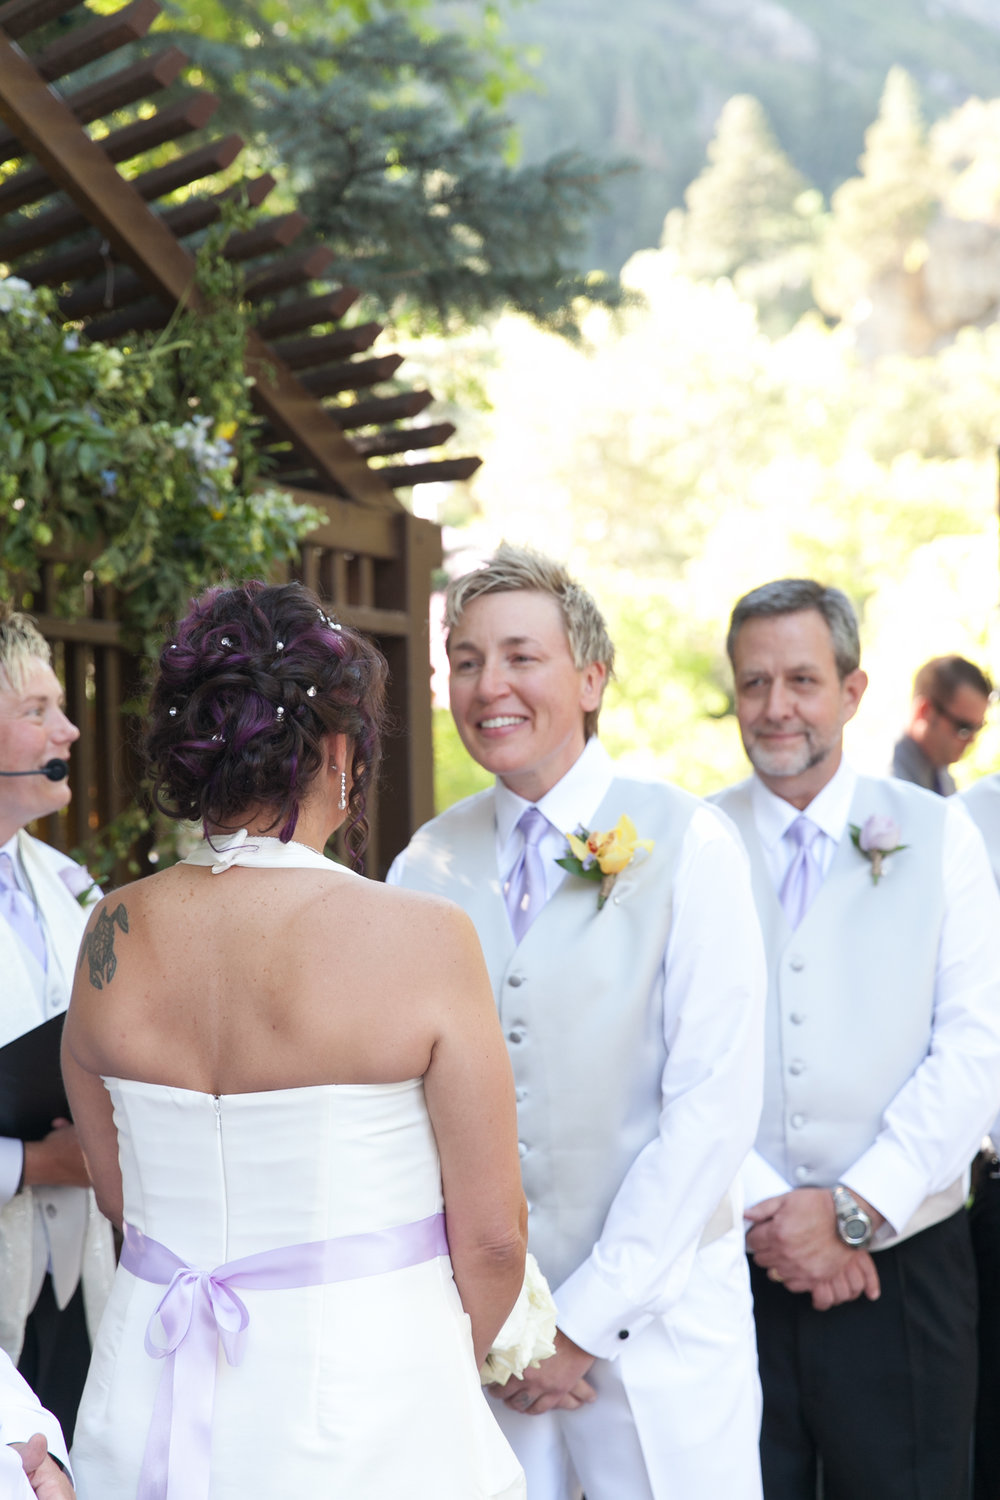 same-sex-wedding-utah-10.jpg